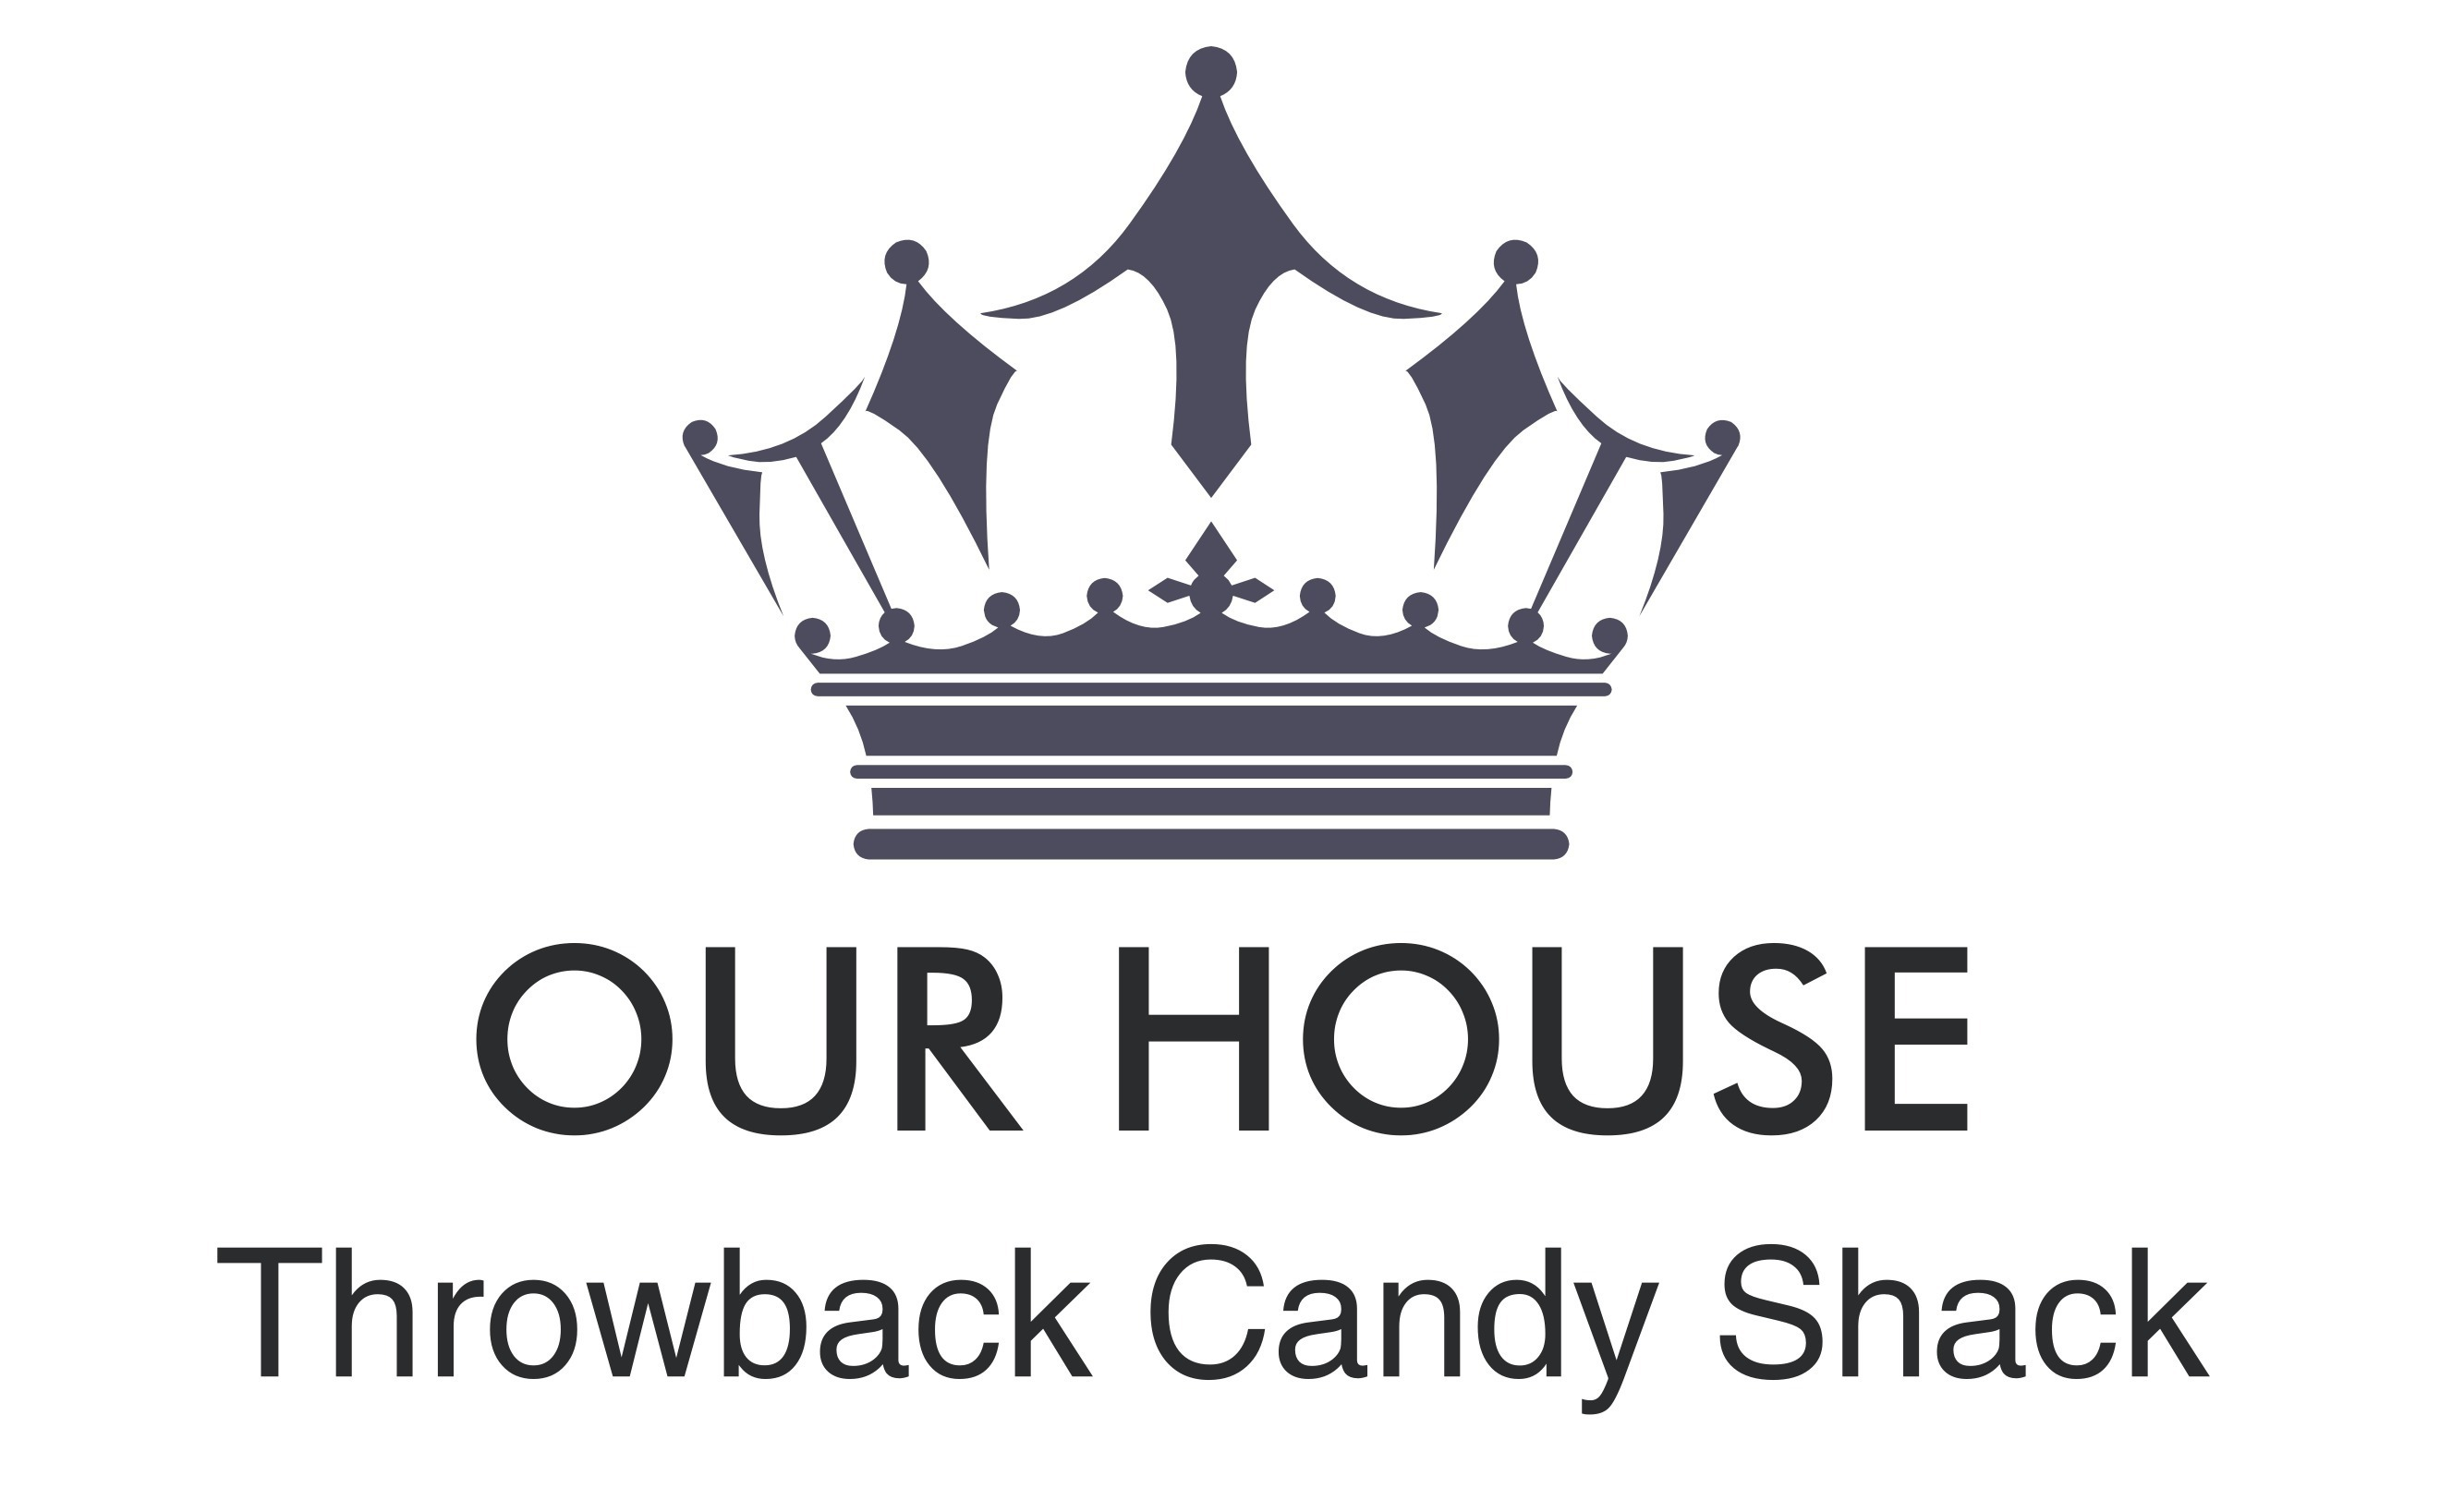 OUR HOUSE Throwback Candy Shack Inc